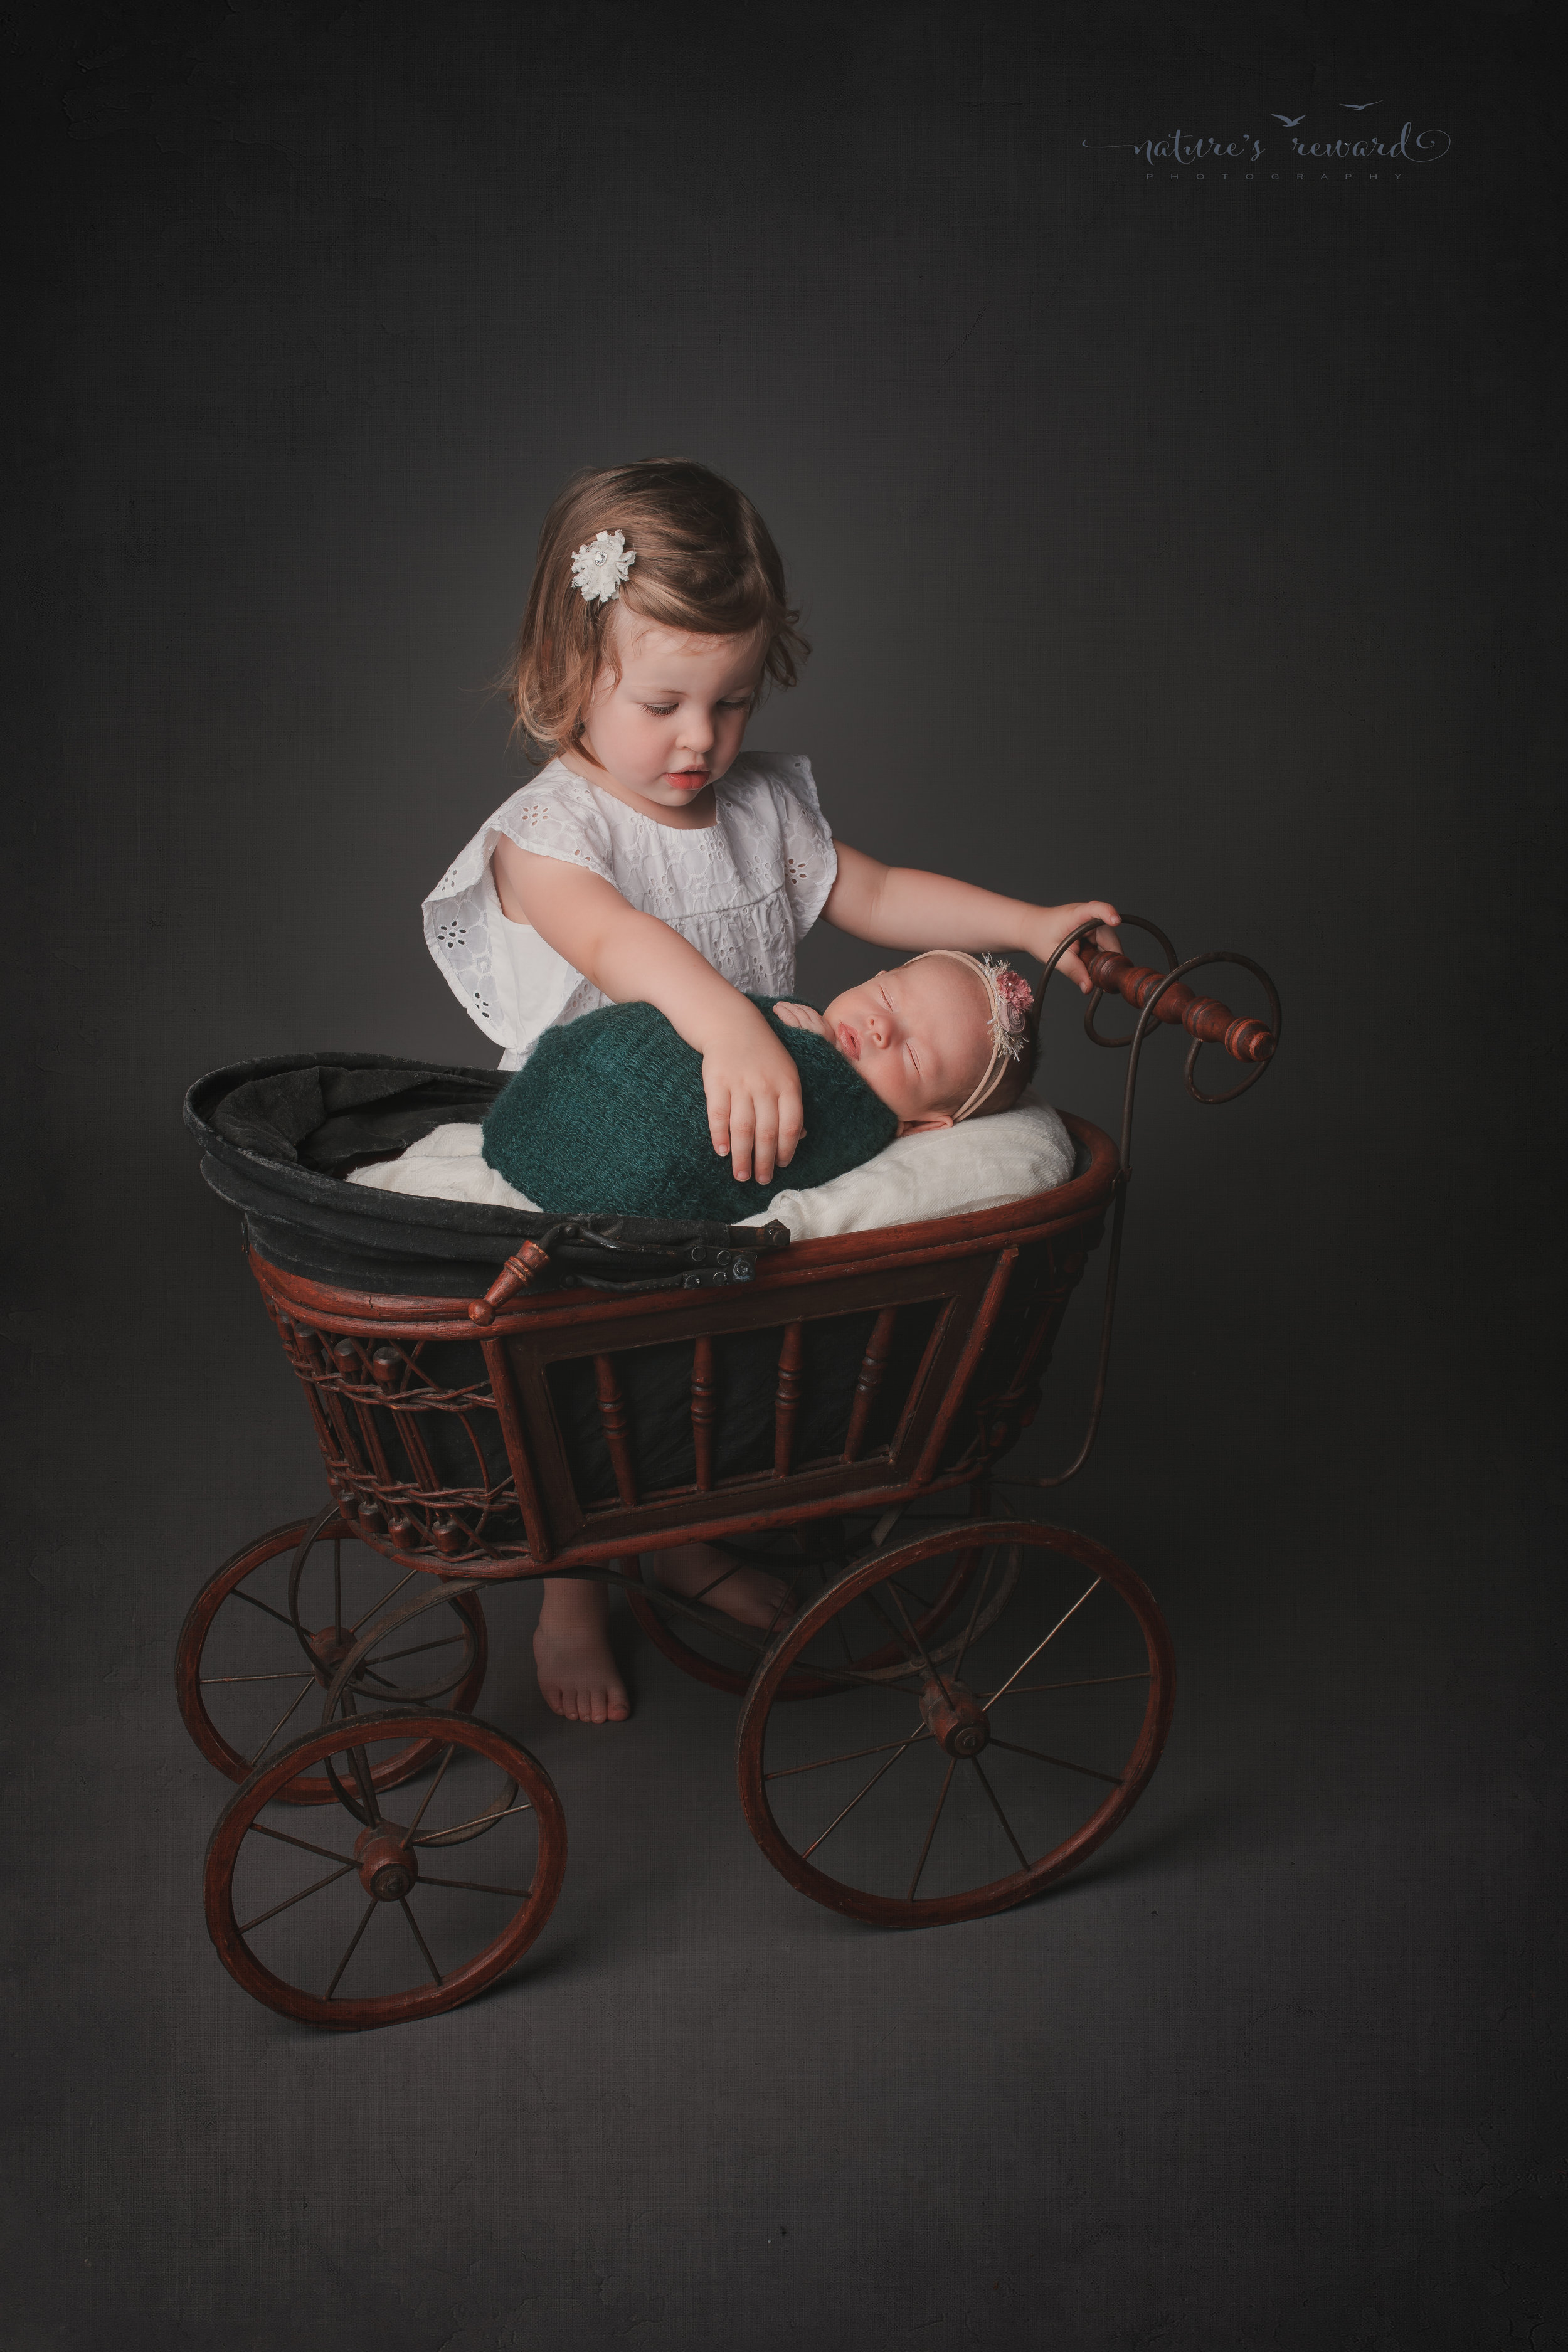 Big sister and her newborn sister in a carriage, a newborn portrait by Nature's Reward Photography